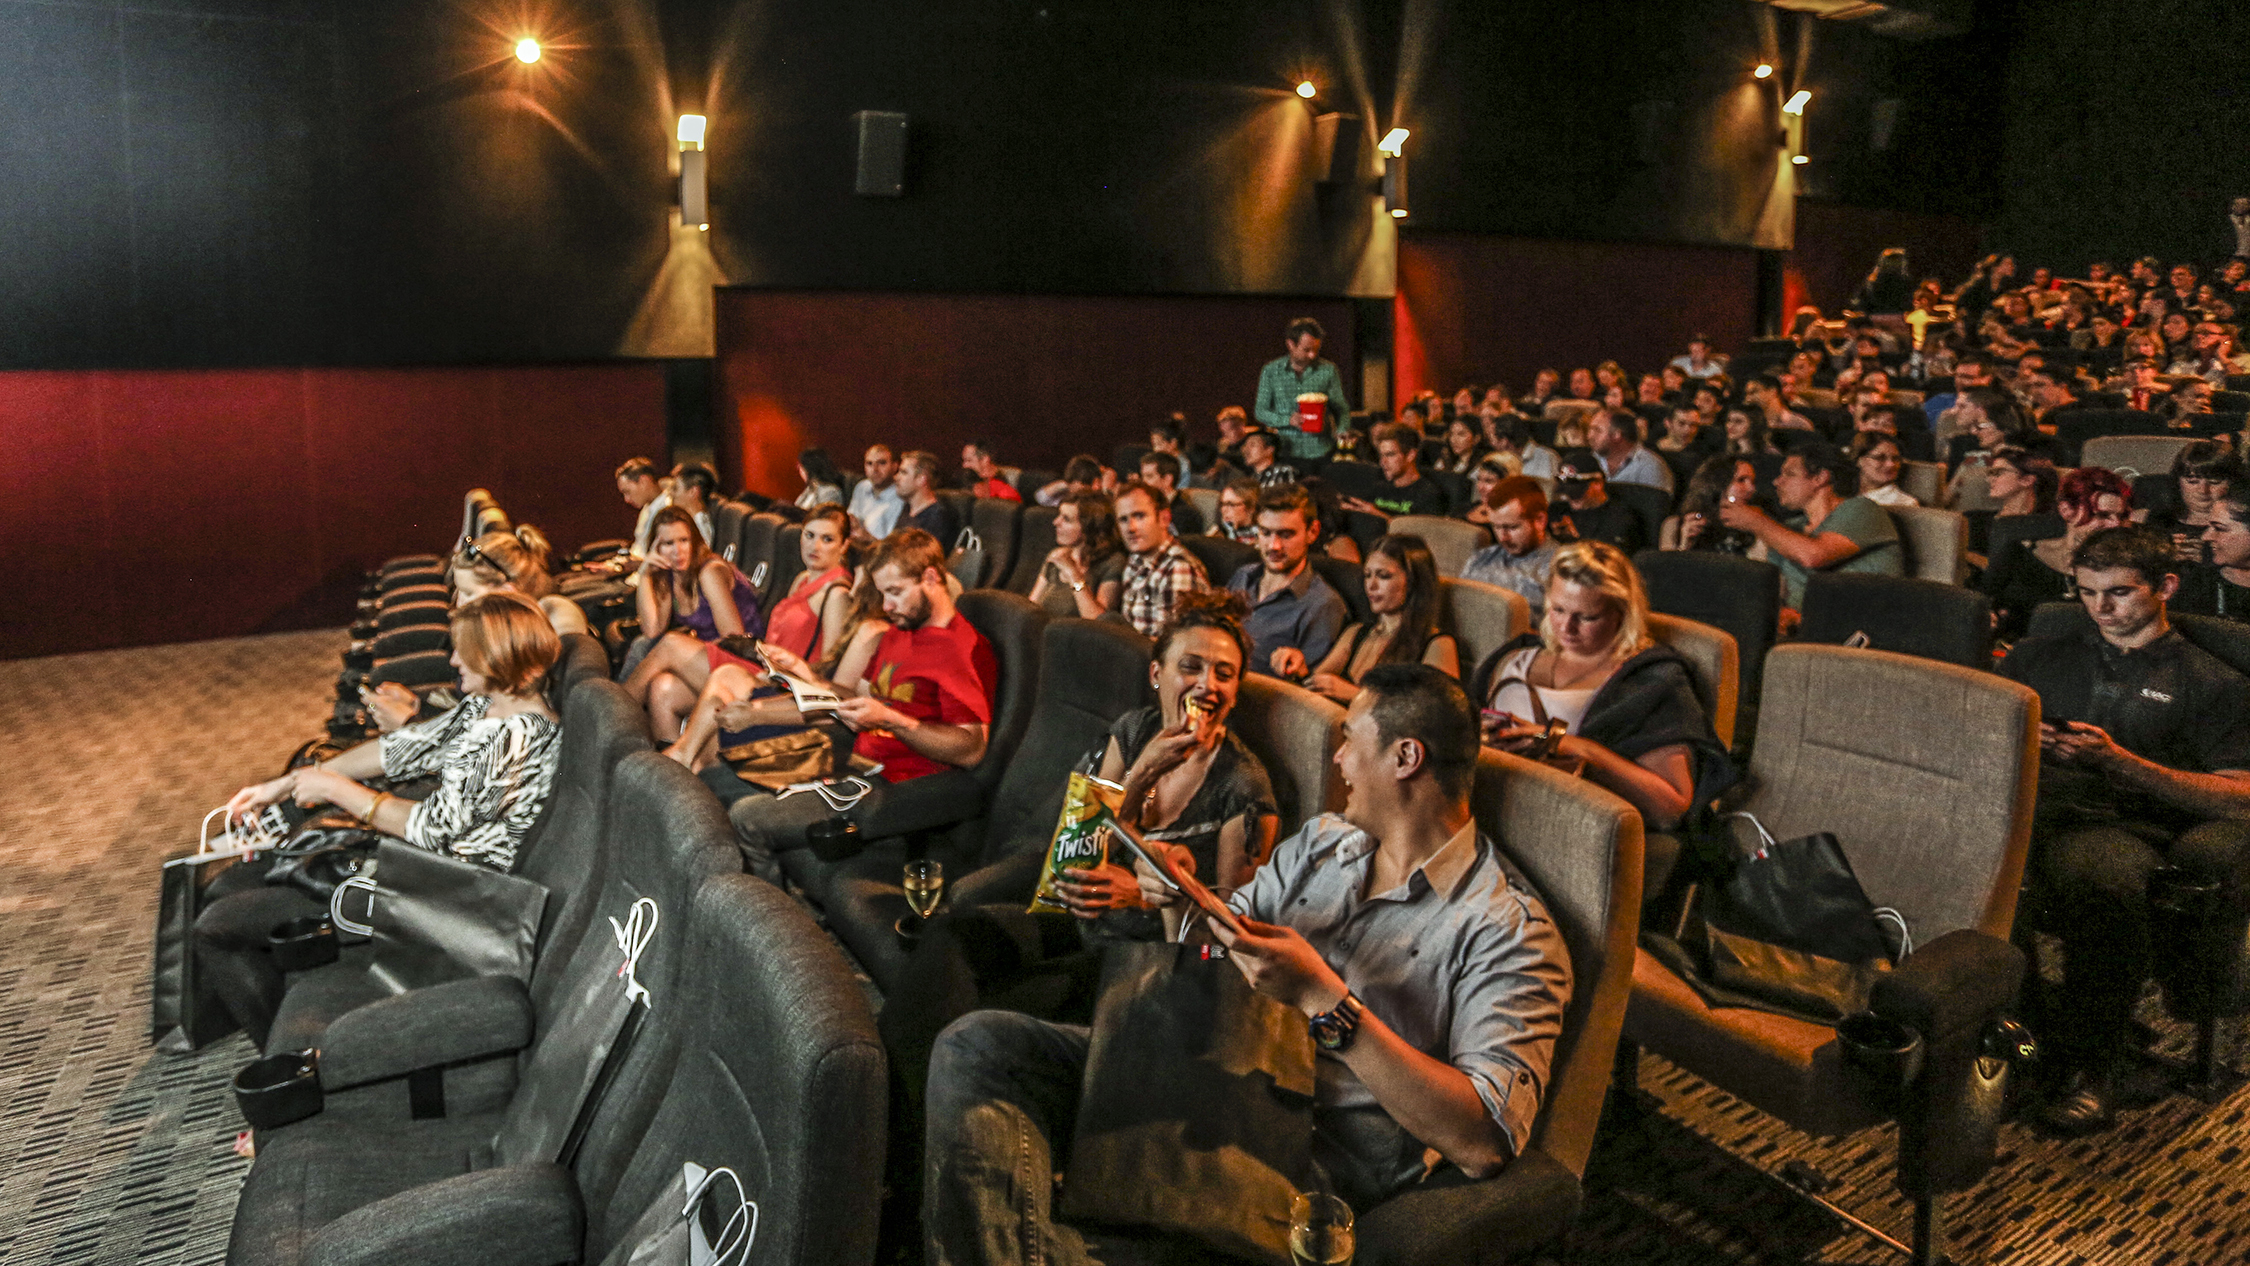 One Sydney cinema is offering  $6 movies this weekend